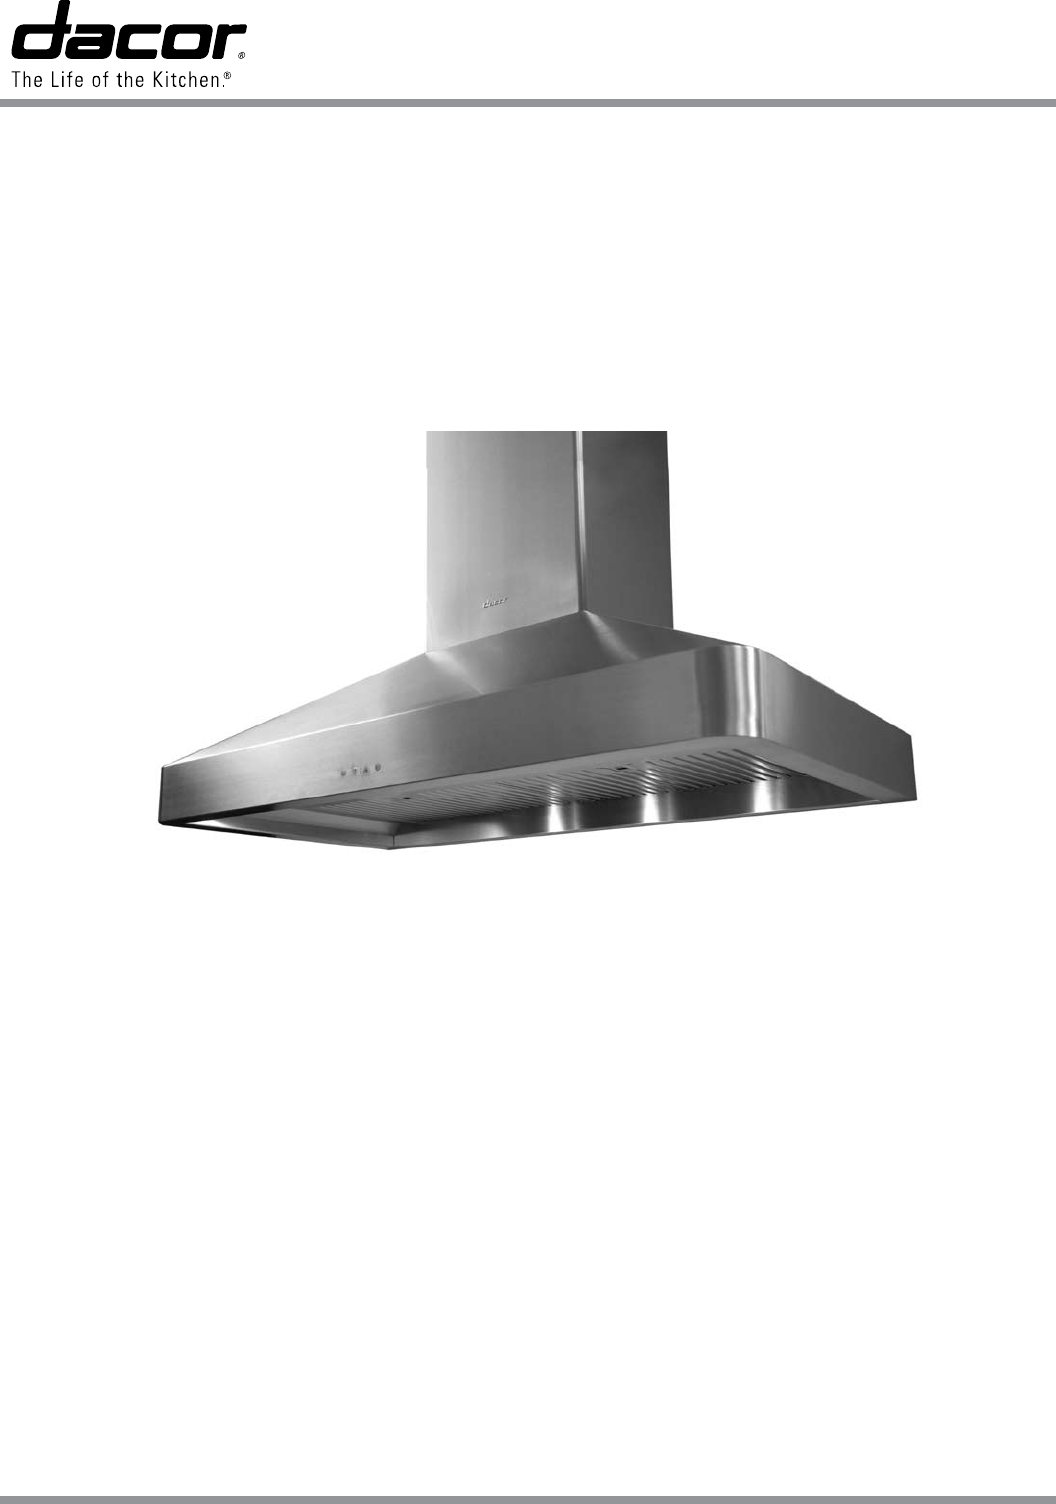 dacor ventilation hood dhw482 user guide manualsonline com rh kitchen manualsonline com dacor range hood troubleshooting Dacor Ventilation Hoods